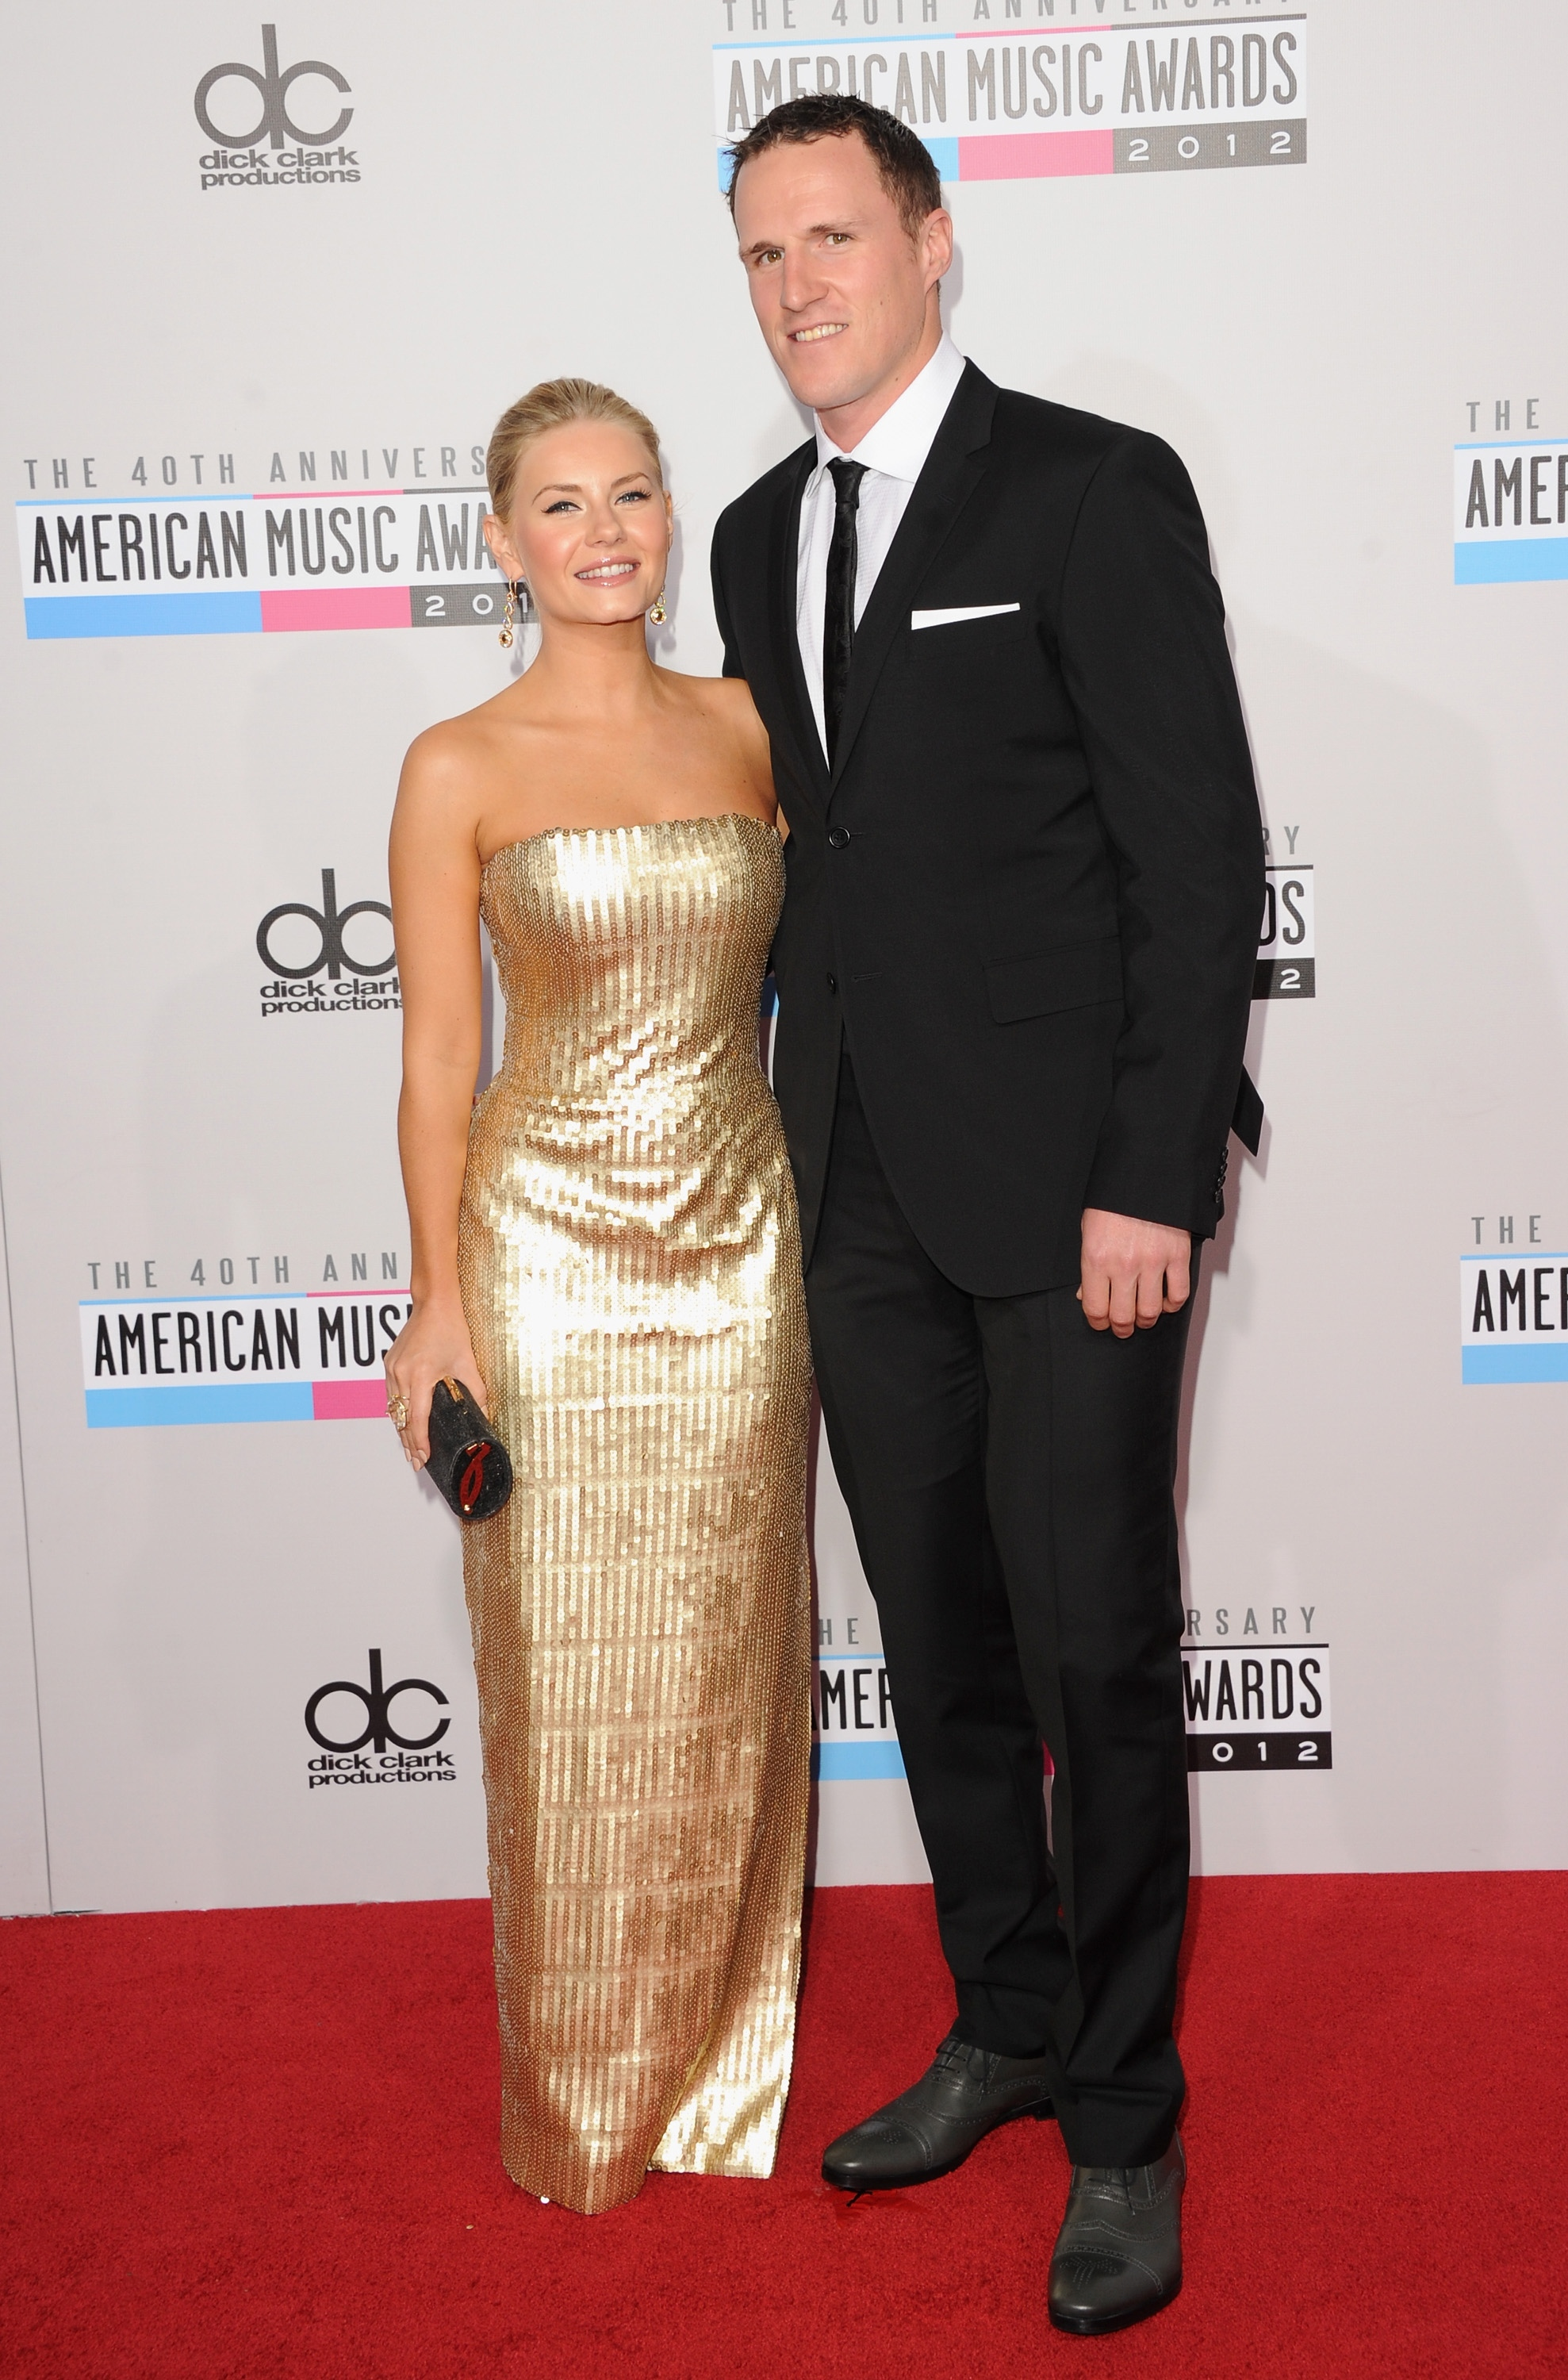 LOS ANGELES, CA - NOVEMBER 18:  Actress Elisha Cuthbert and athlete Dion Phaneuf attend the 40th American Music Awards held at Nokia Theatre L.A. Live on November 18, 2012 in Los Angeles, California.  (Photo by Jason Merritt/Getty Images)